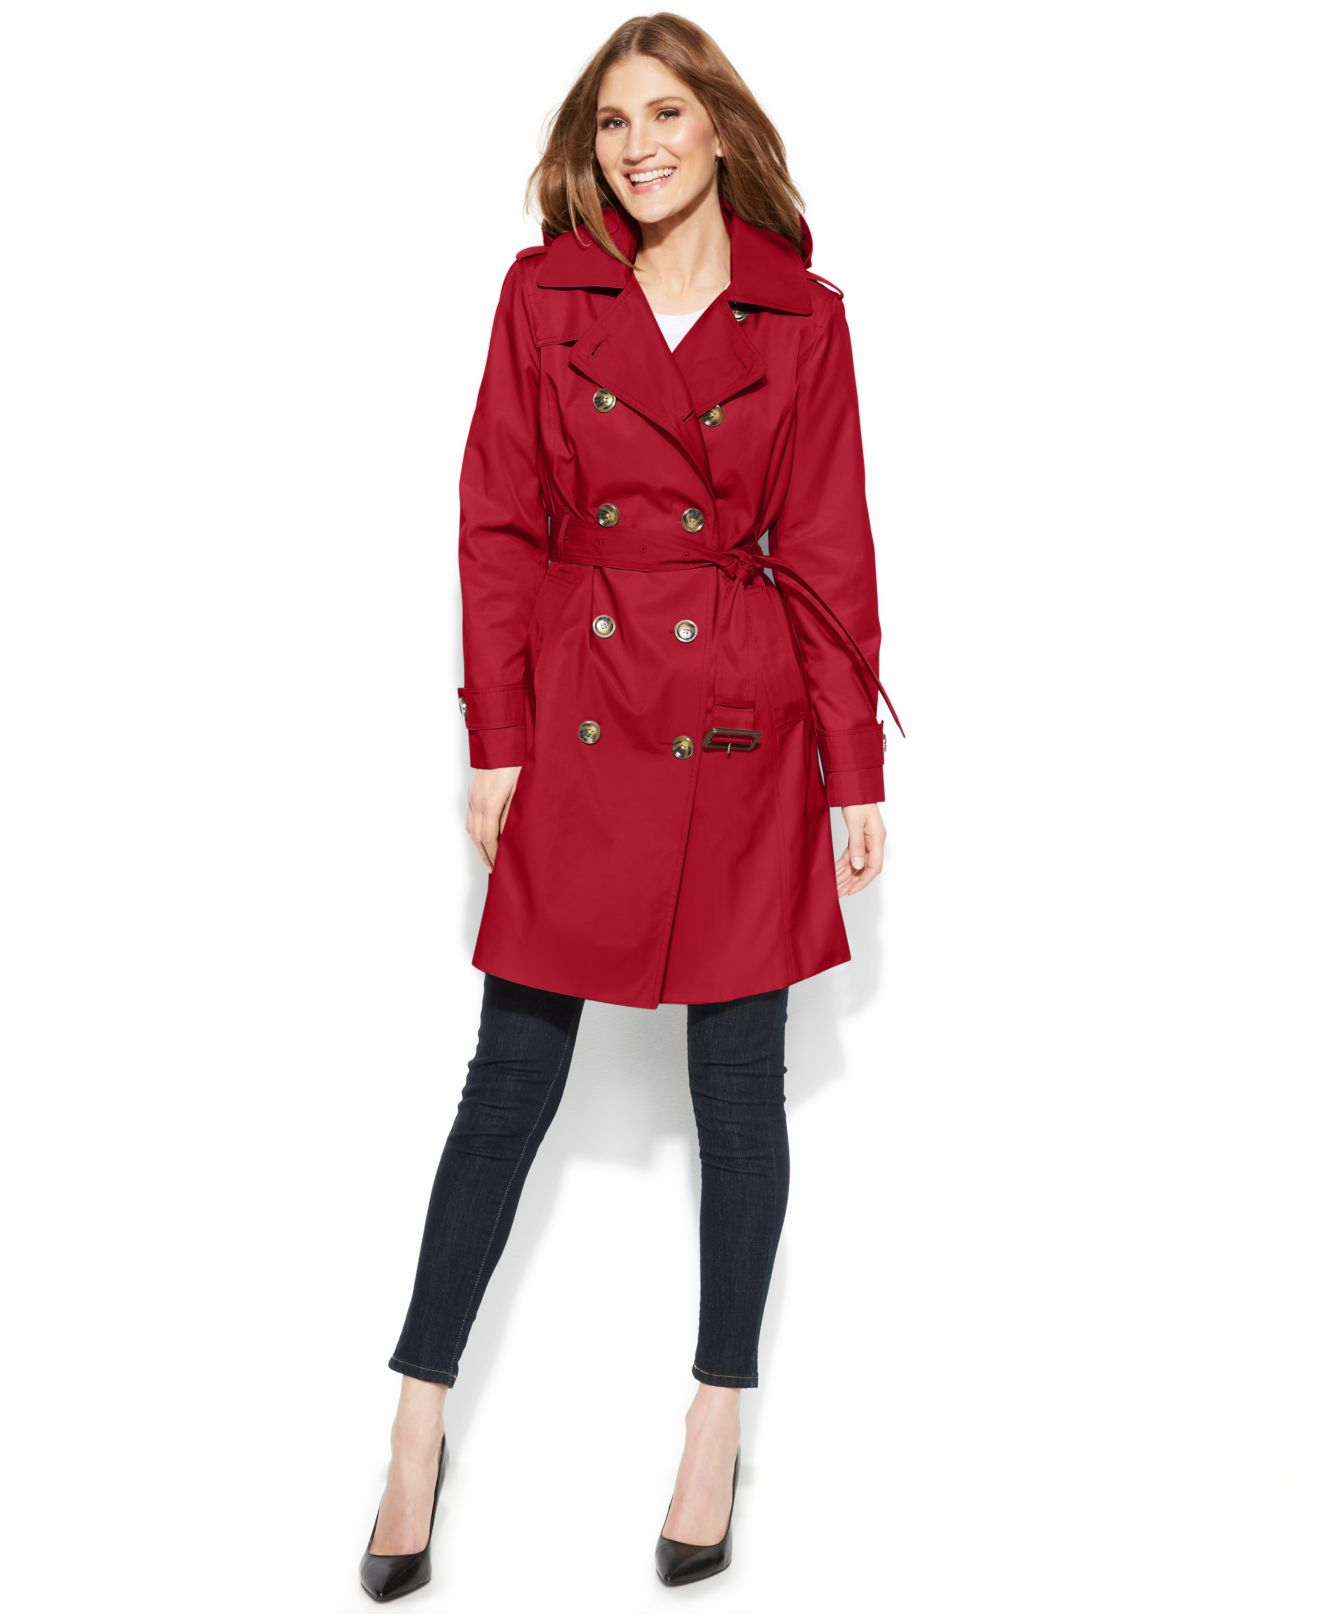 598dc637b74ec Lyst - London Fog All-Weather Hooded Trench Coat in Red